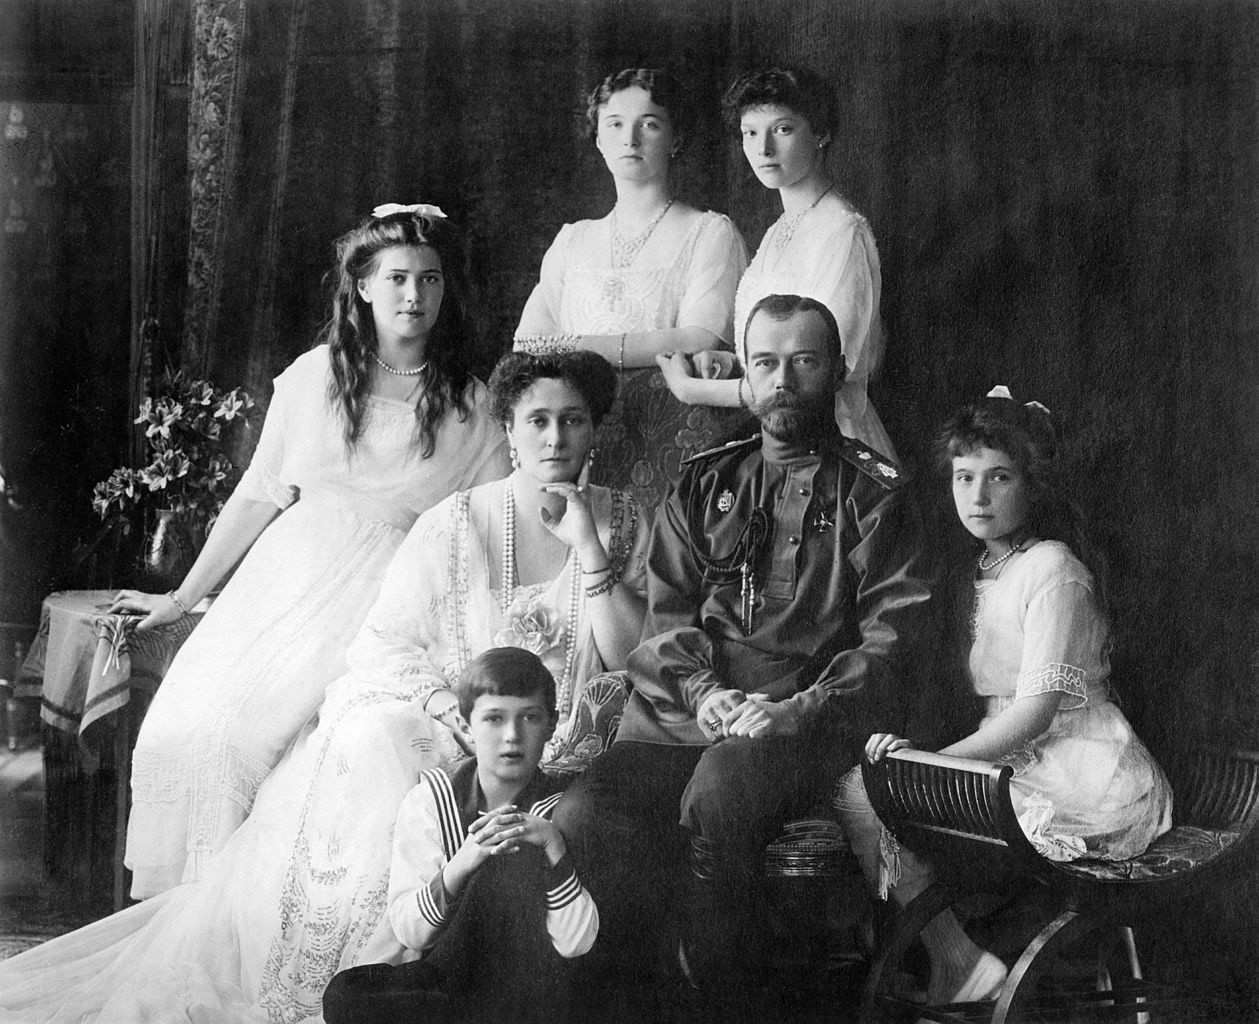 Nicholas II with his wife and children